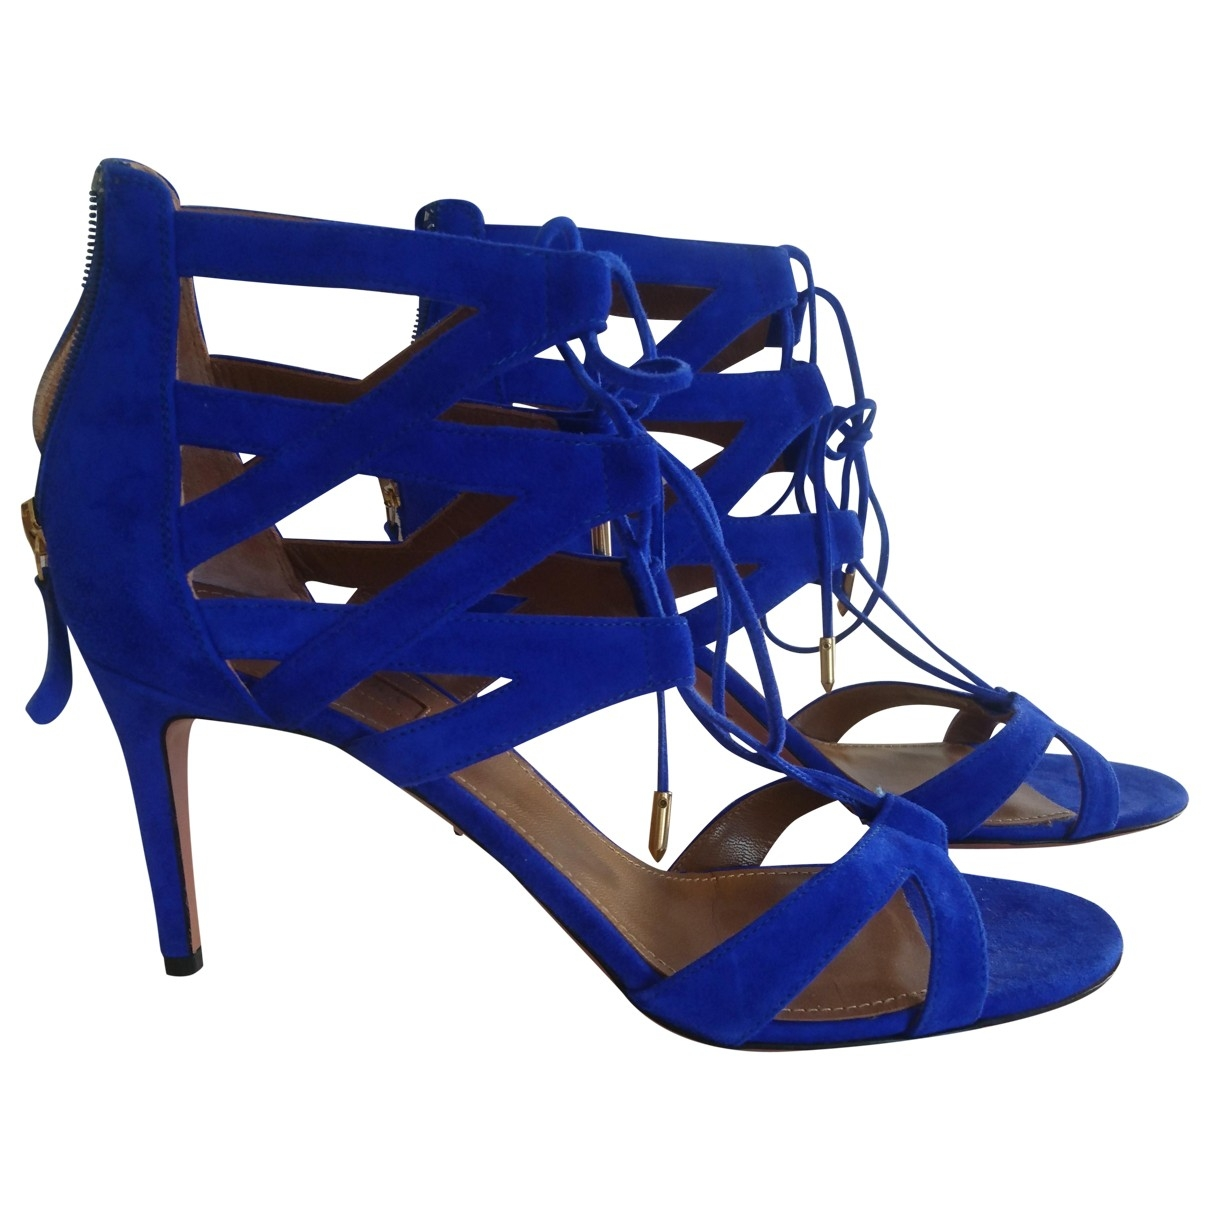 Aquazzura \N Blue Suede Sandals for Women 40 IT